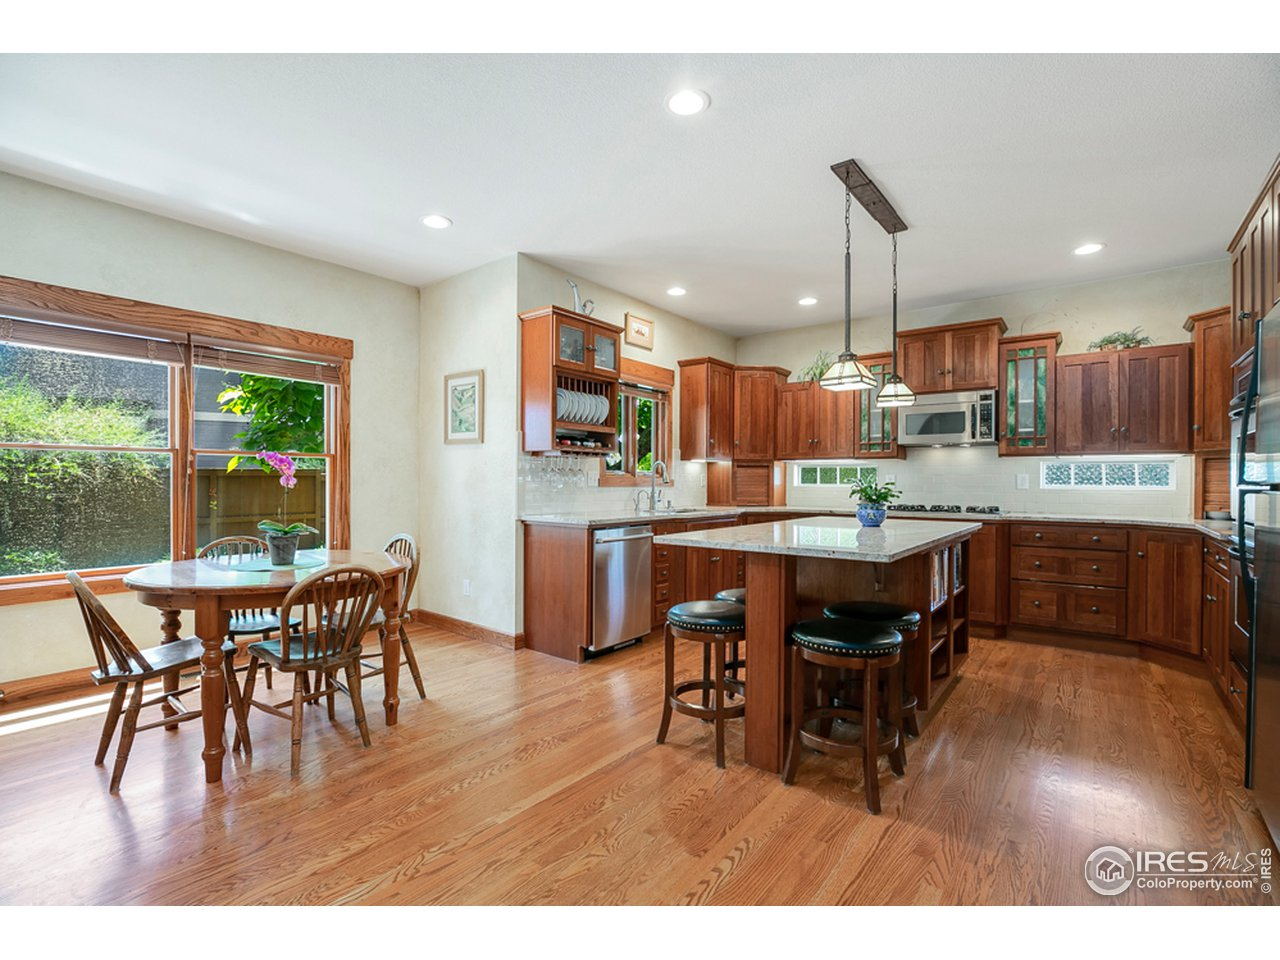 Spacious chef's kitchen with Schroll cabinetry and newer granite